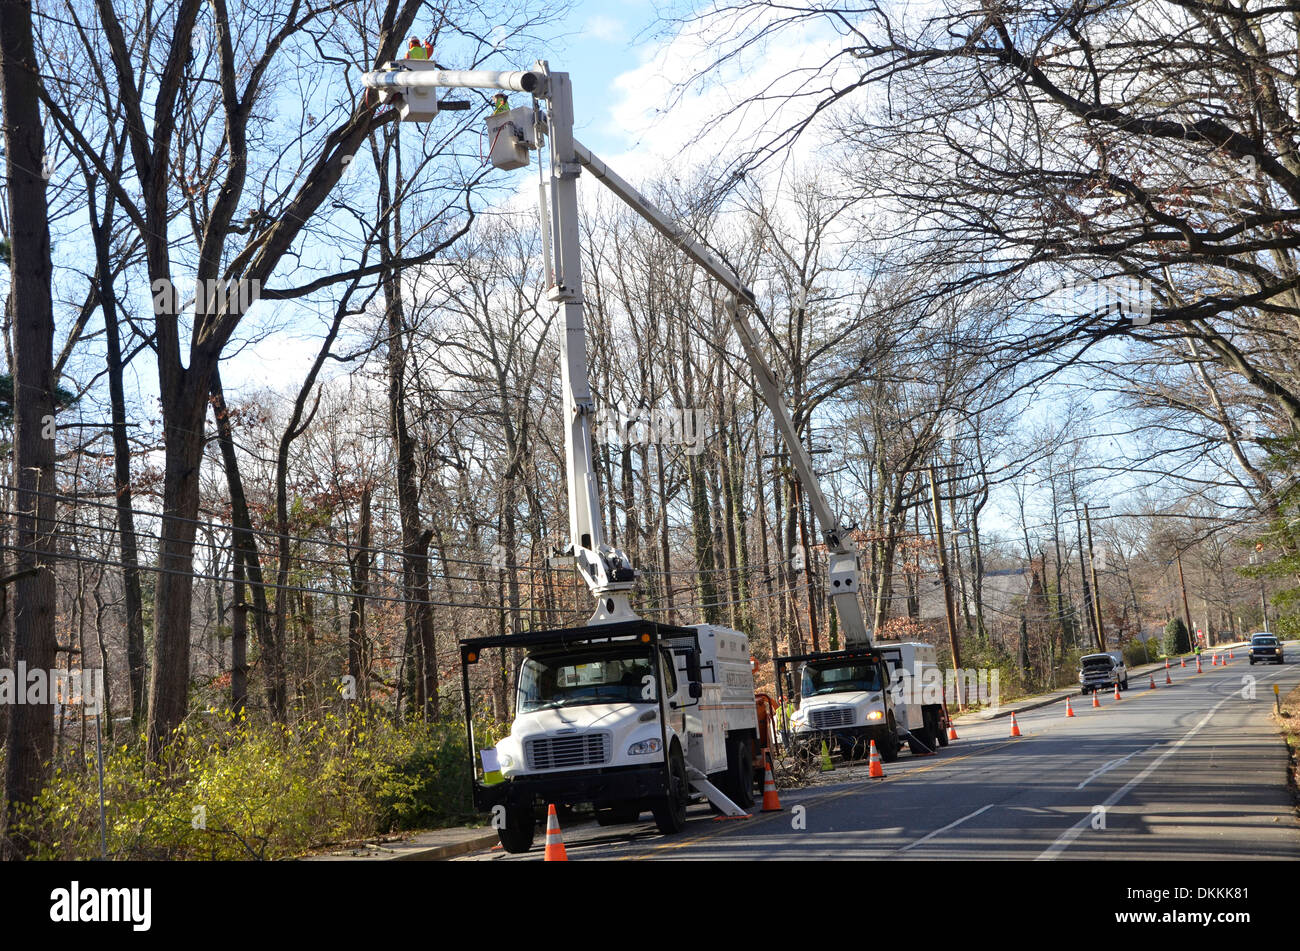 Tree cutters cutting down tree limbs on a tree lined street  in Greenbelt, Maryland - Stock Image